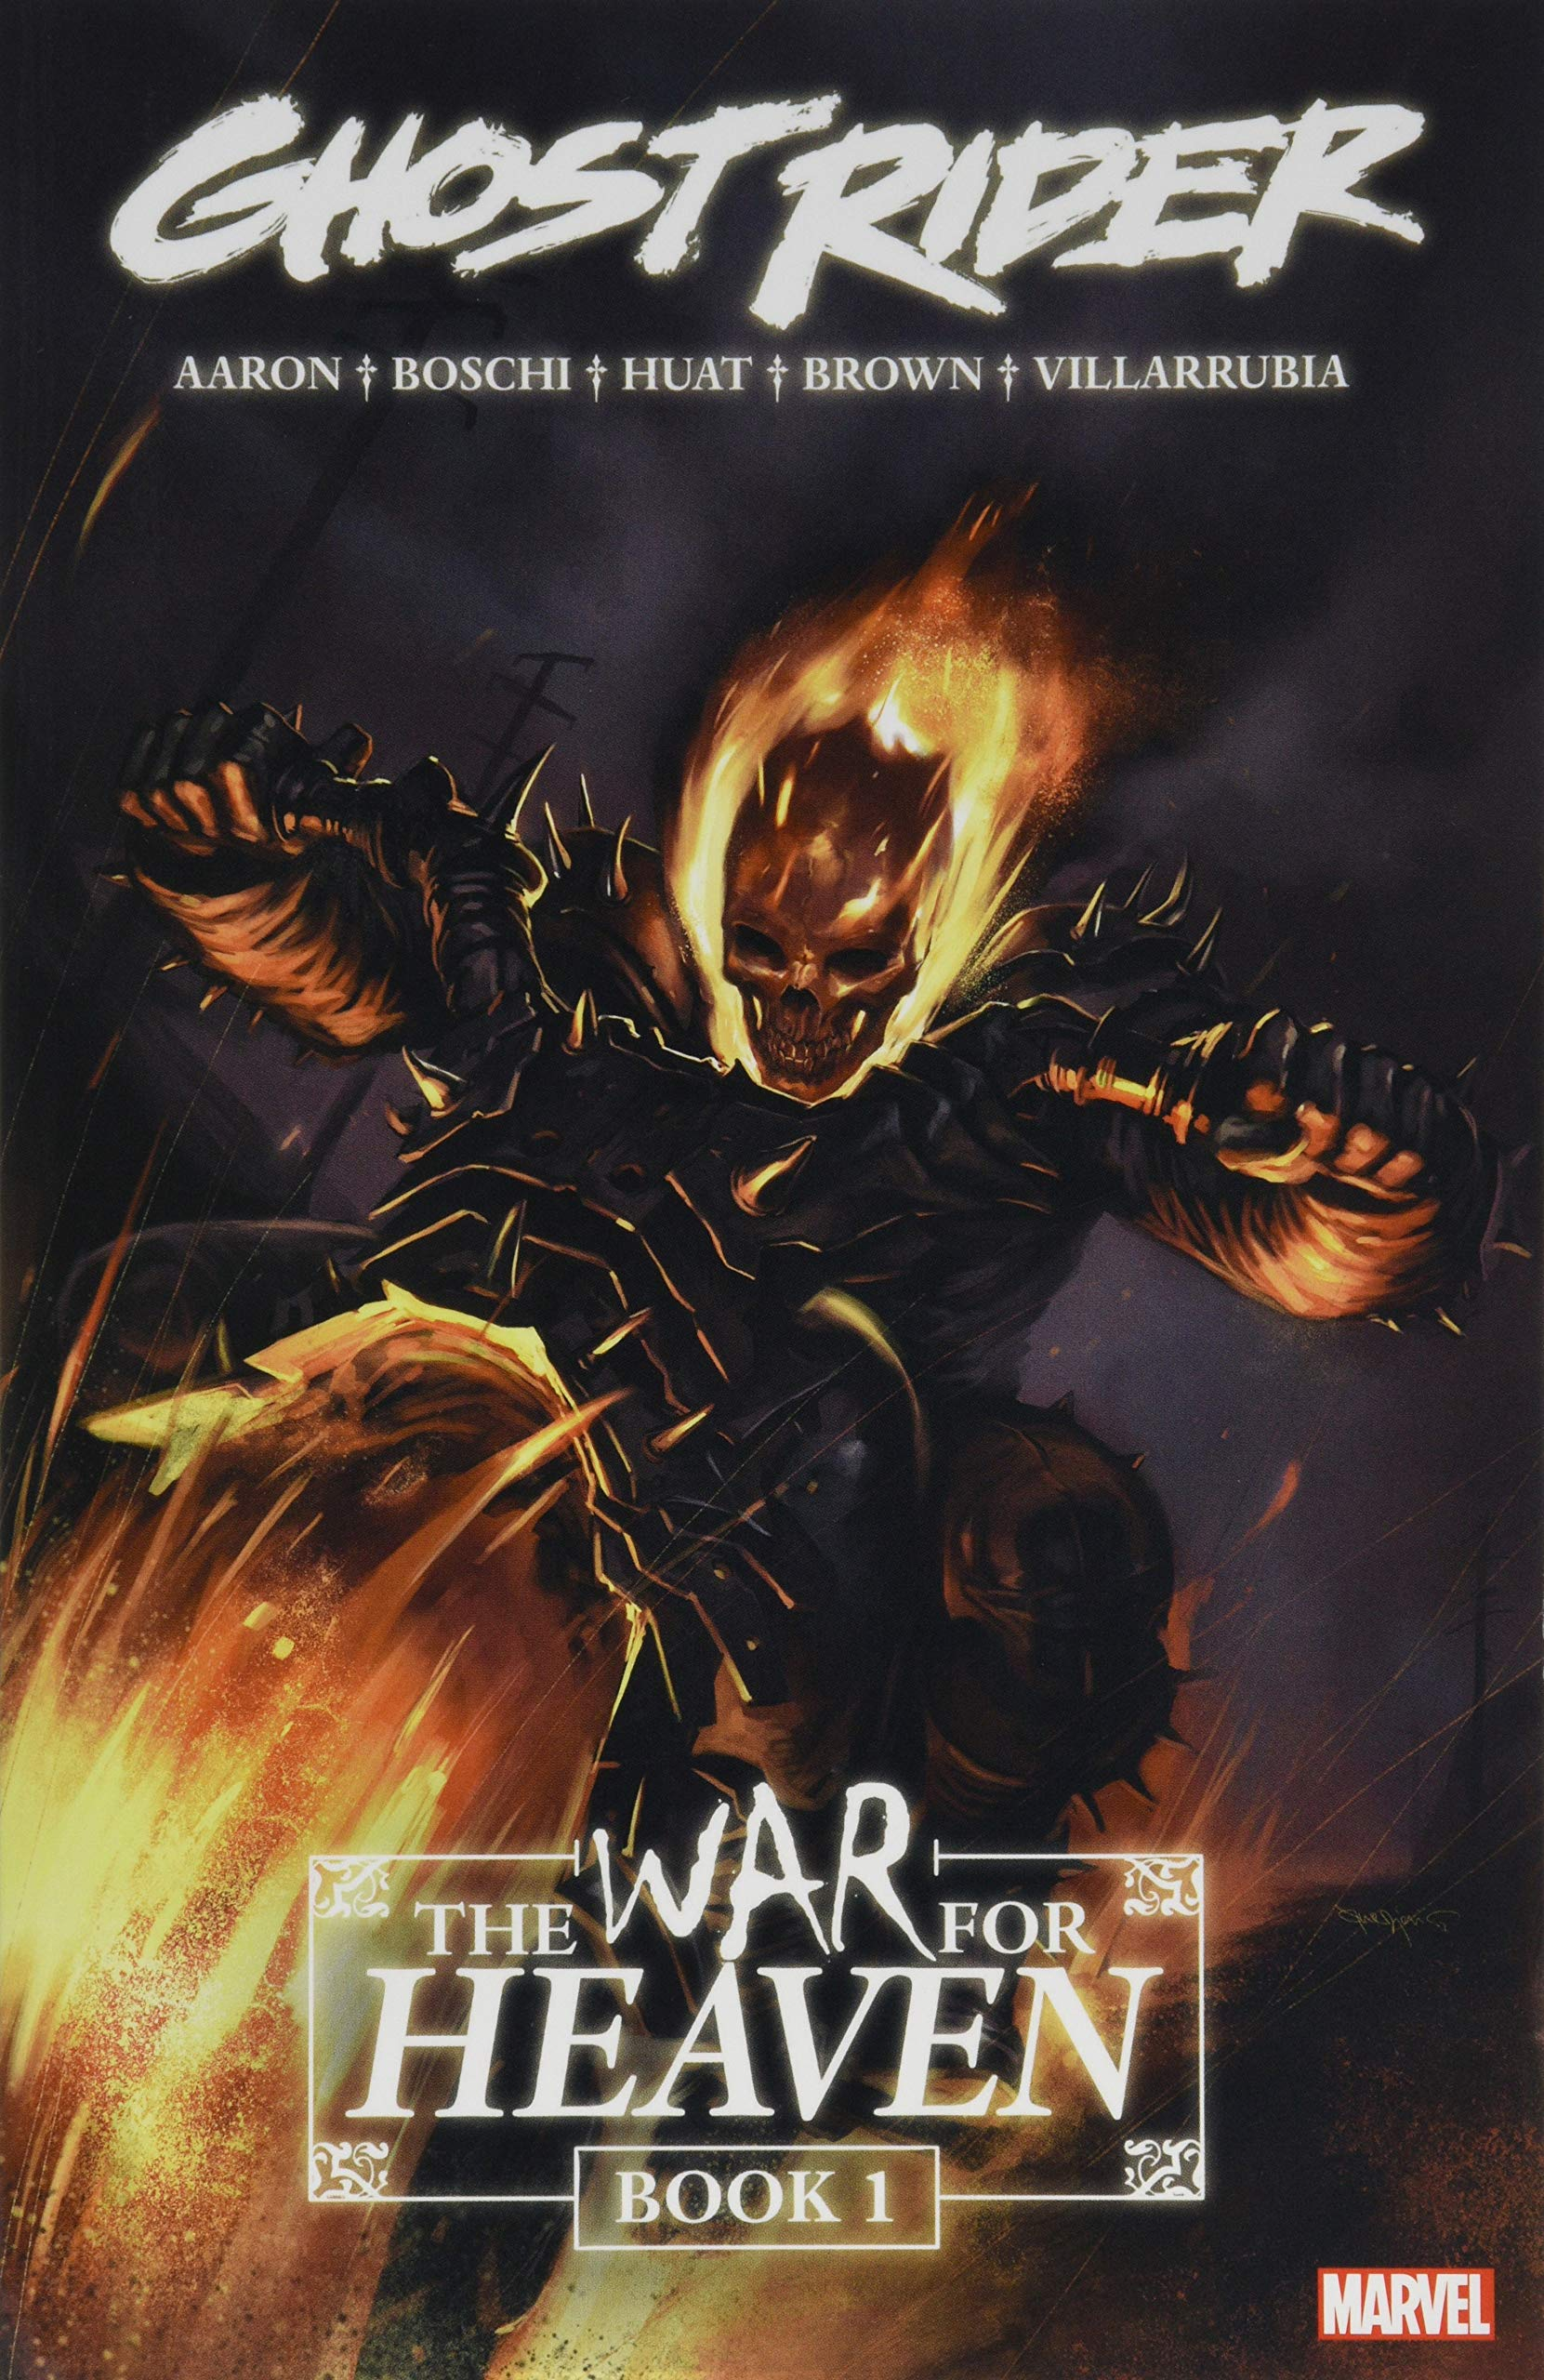 Paperback by Moore Stuart; Aaron Jason;... Ghost Rider 1 : The War for Heaven